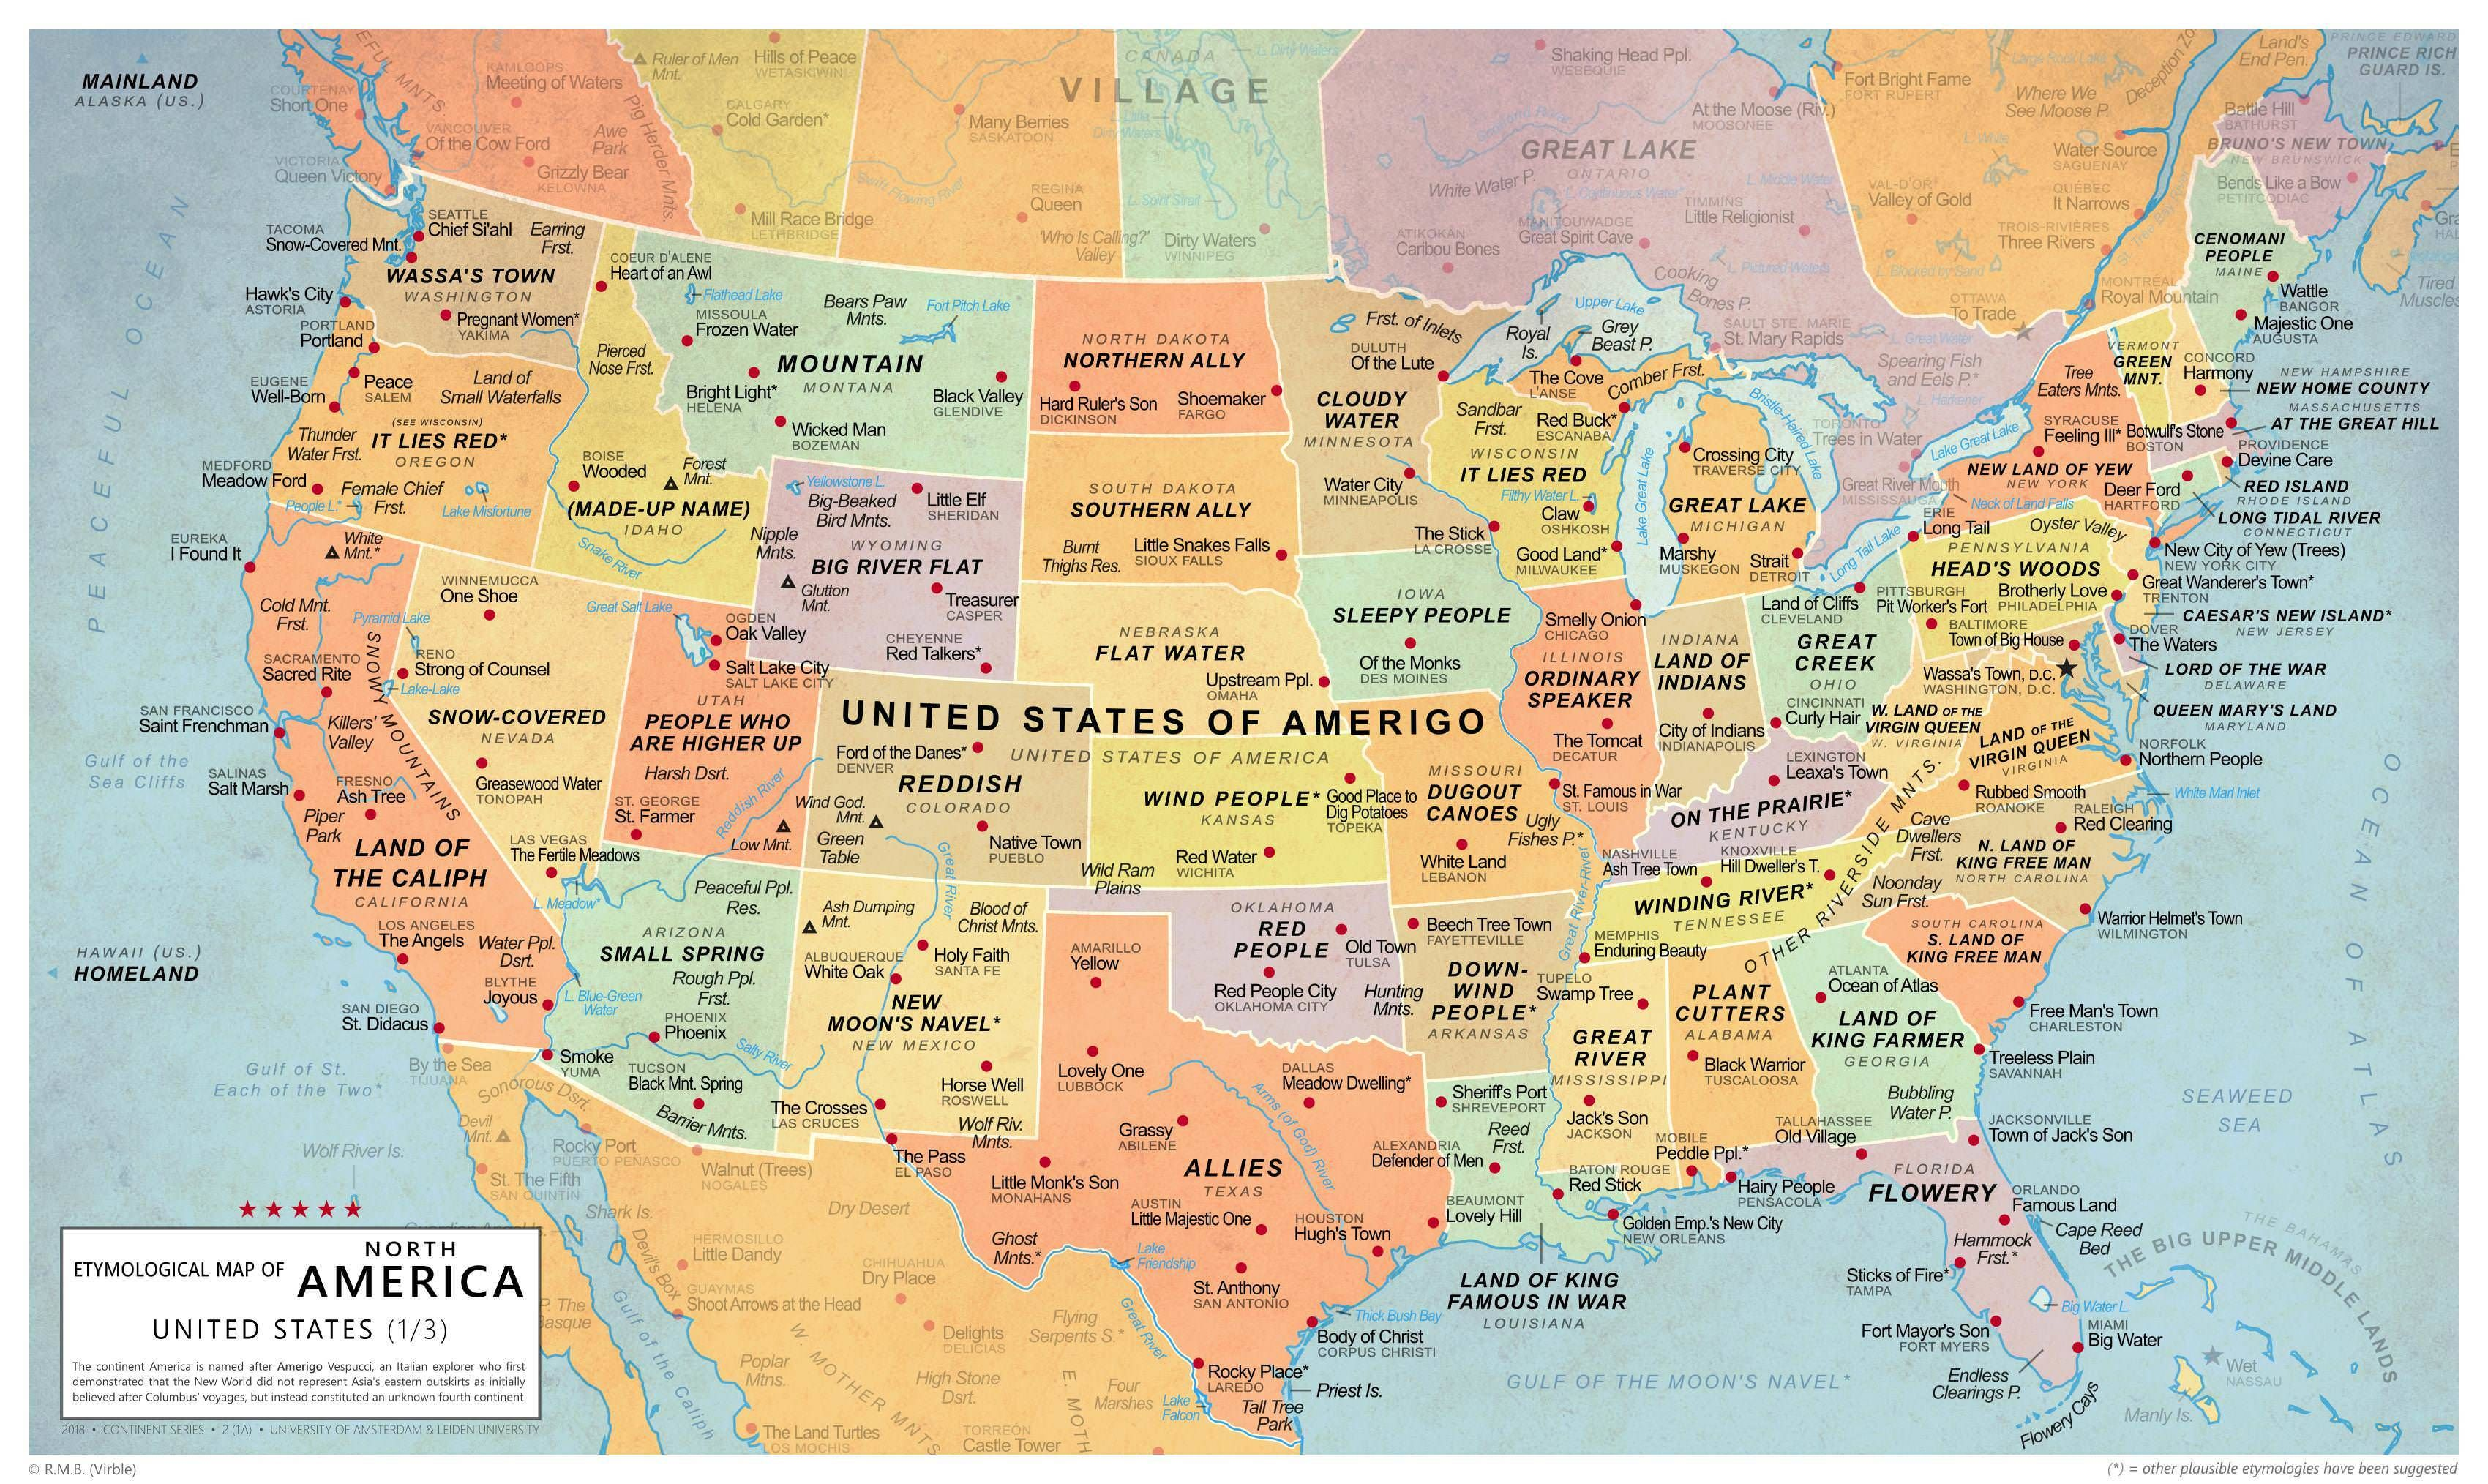 Etymological Map of the United States of America (North ... on missouri map, caribbean map, europe map, blank map, us state map, arkansas map, mississippi map, east coast map, nevada map, the world map, texas map, full size us map, canada map, the us map, africa map, 13 colonies map, tennessee map, florida map, mexico map, great lakes map,